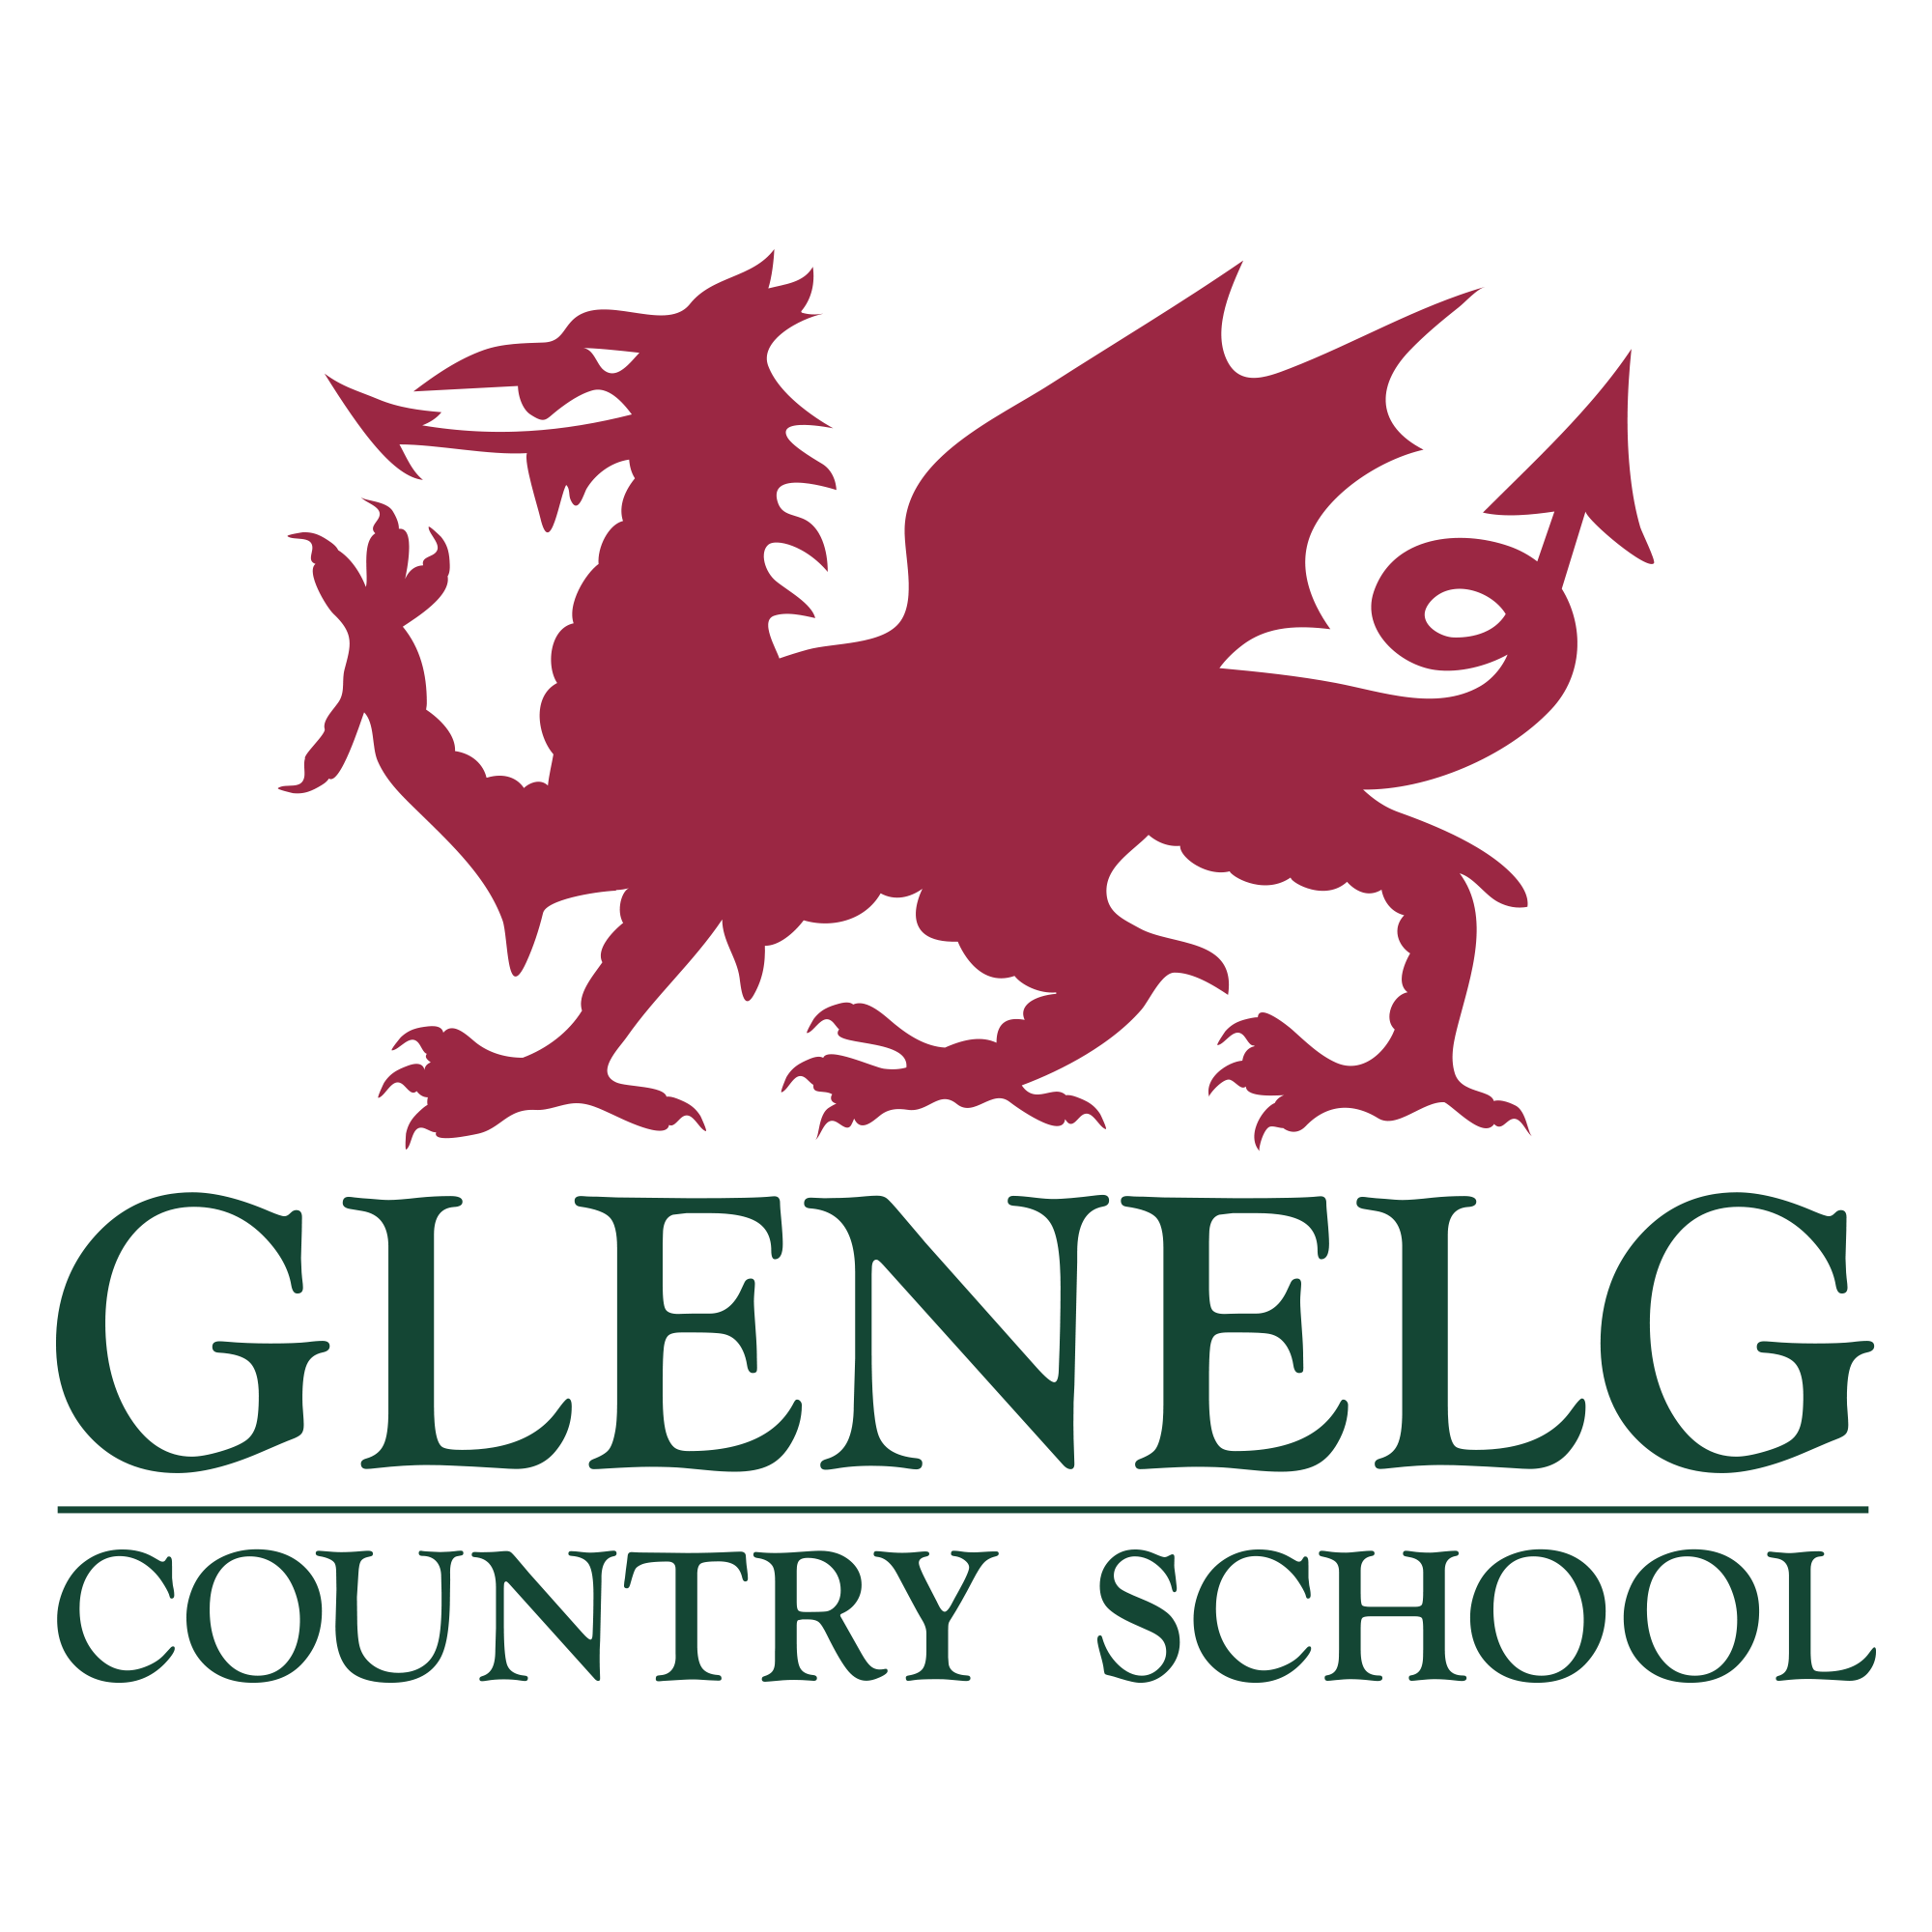 Glenelg Country School to Celebrate Class of 2020 with Graduation Car Parade